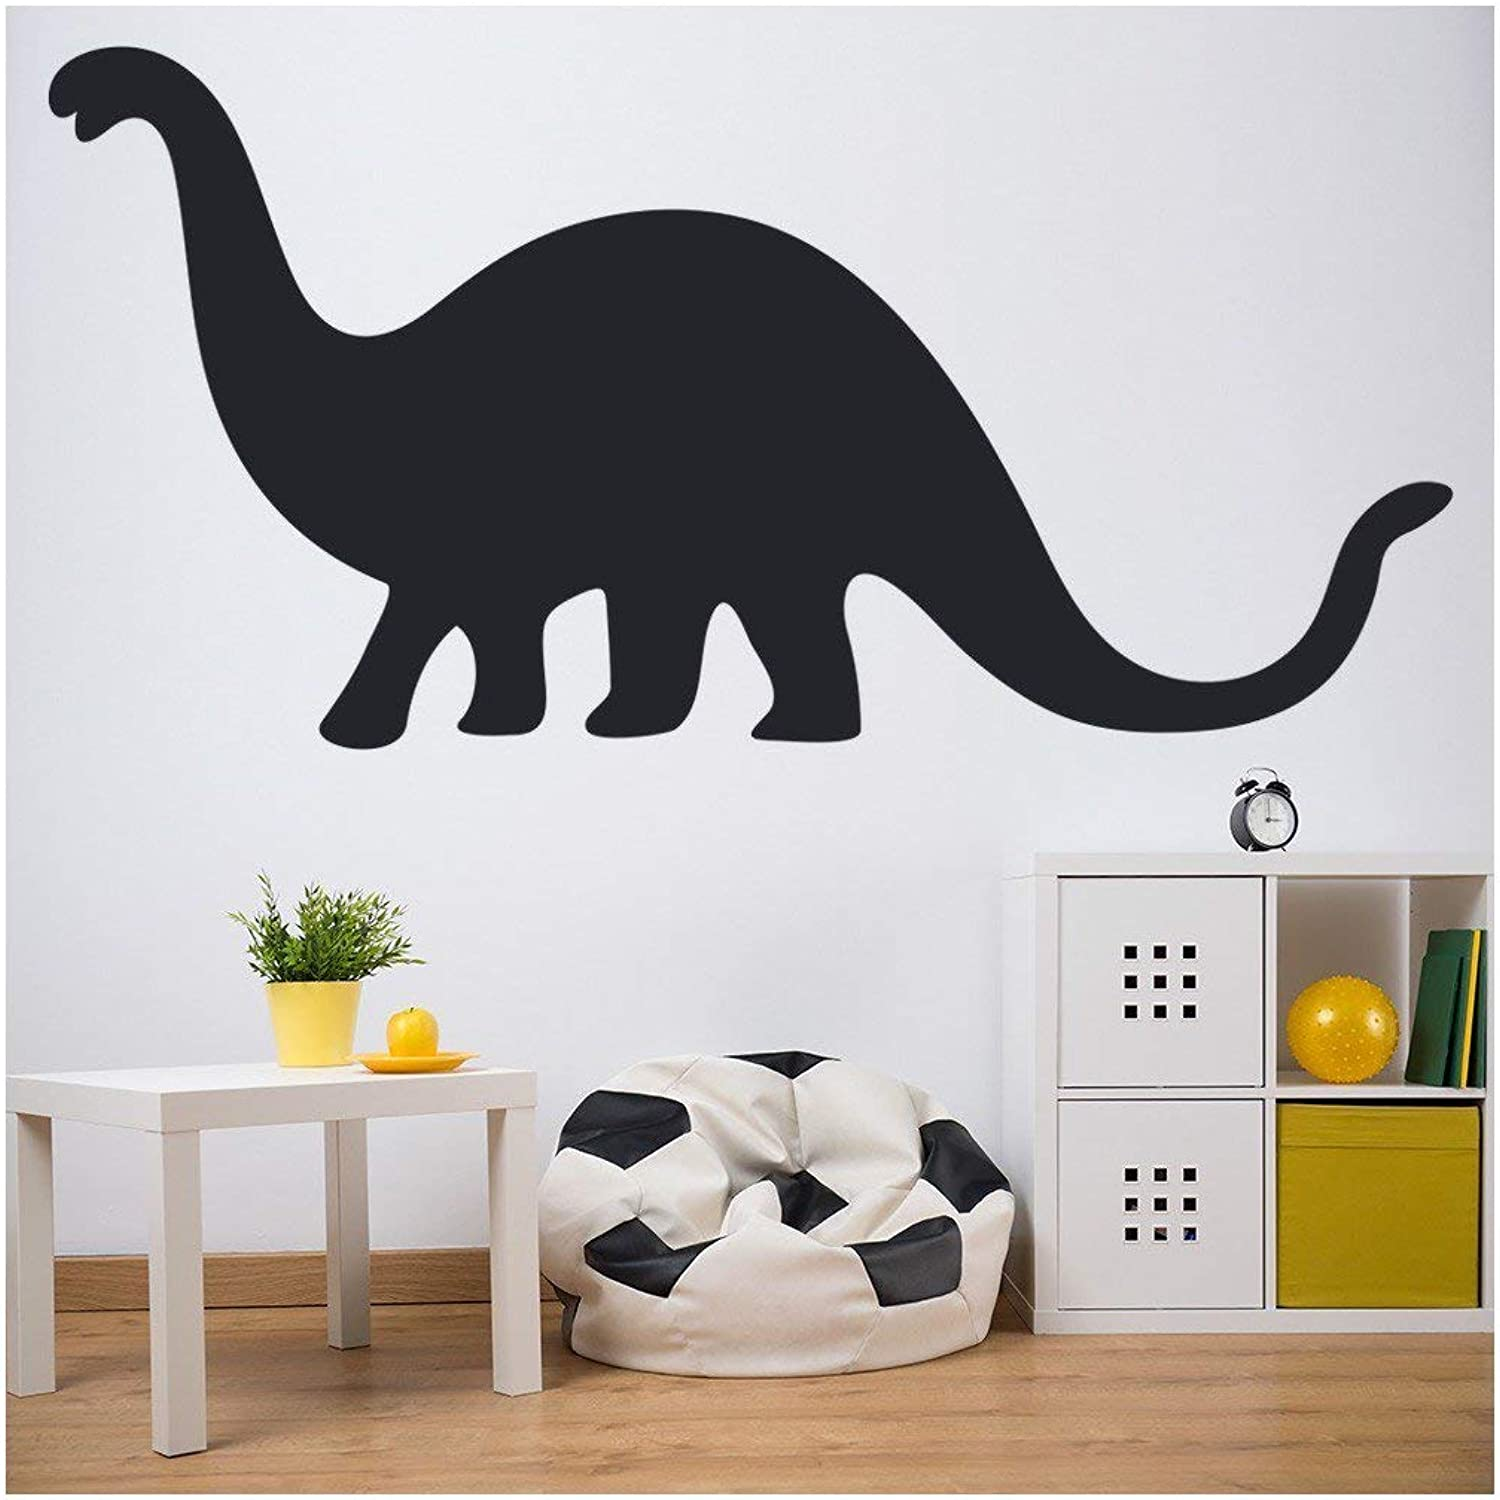 Brontosaurus Dinosaur Wall Sticker Prehistoric Wall Decal Kids Bedroom Decor available in 5 Sizes and 25 Colours Medium Moss Green